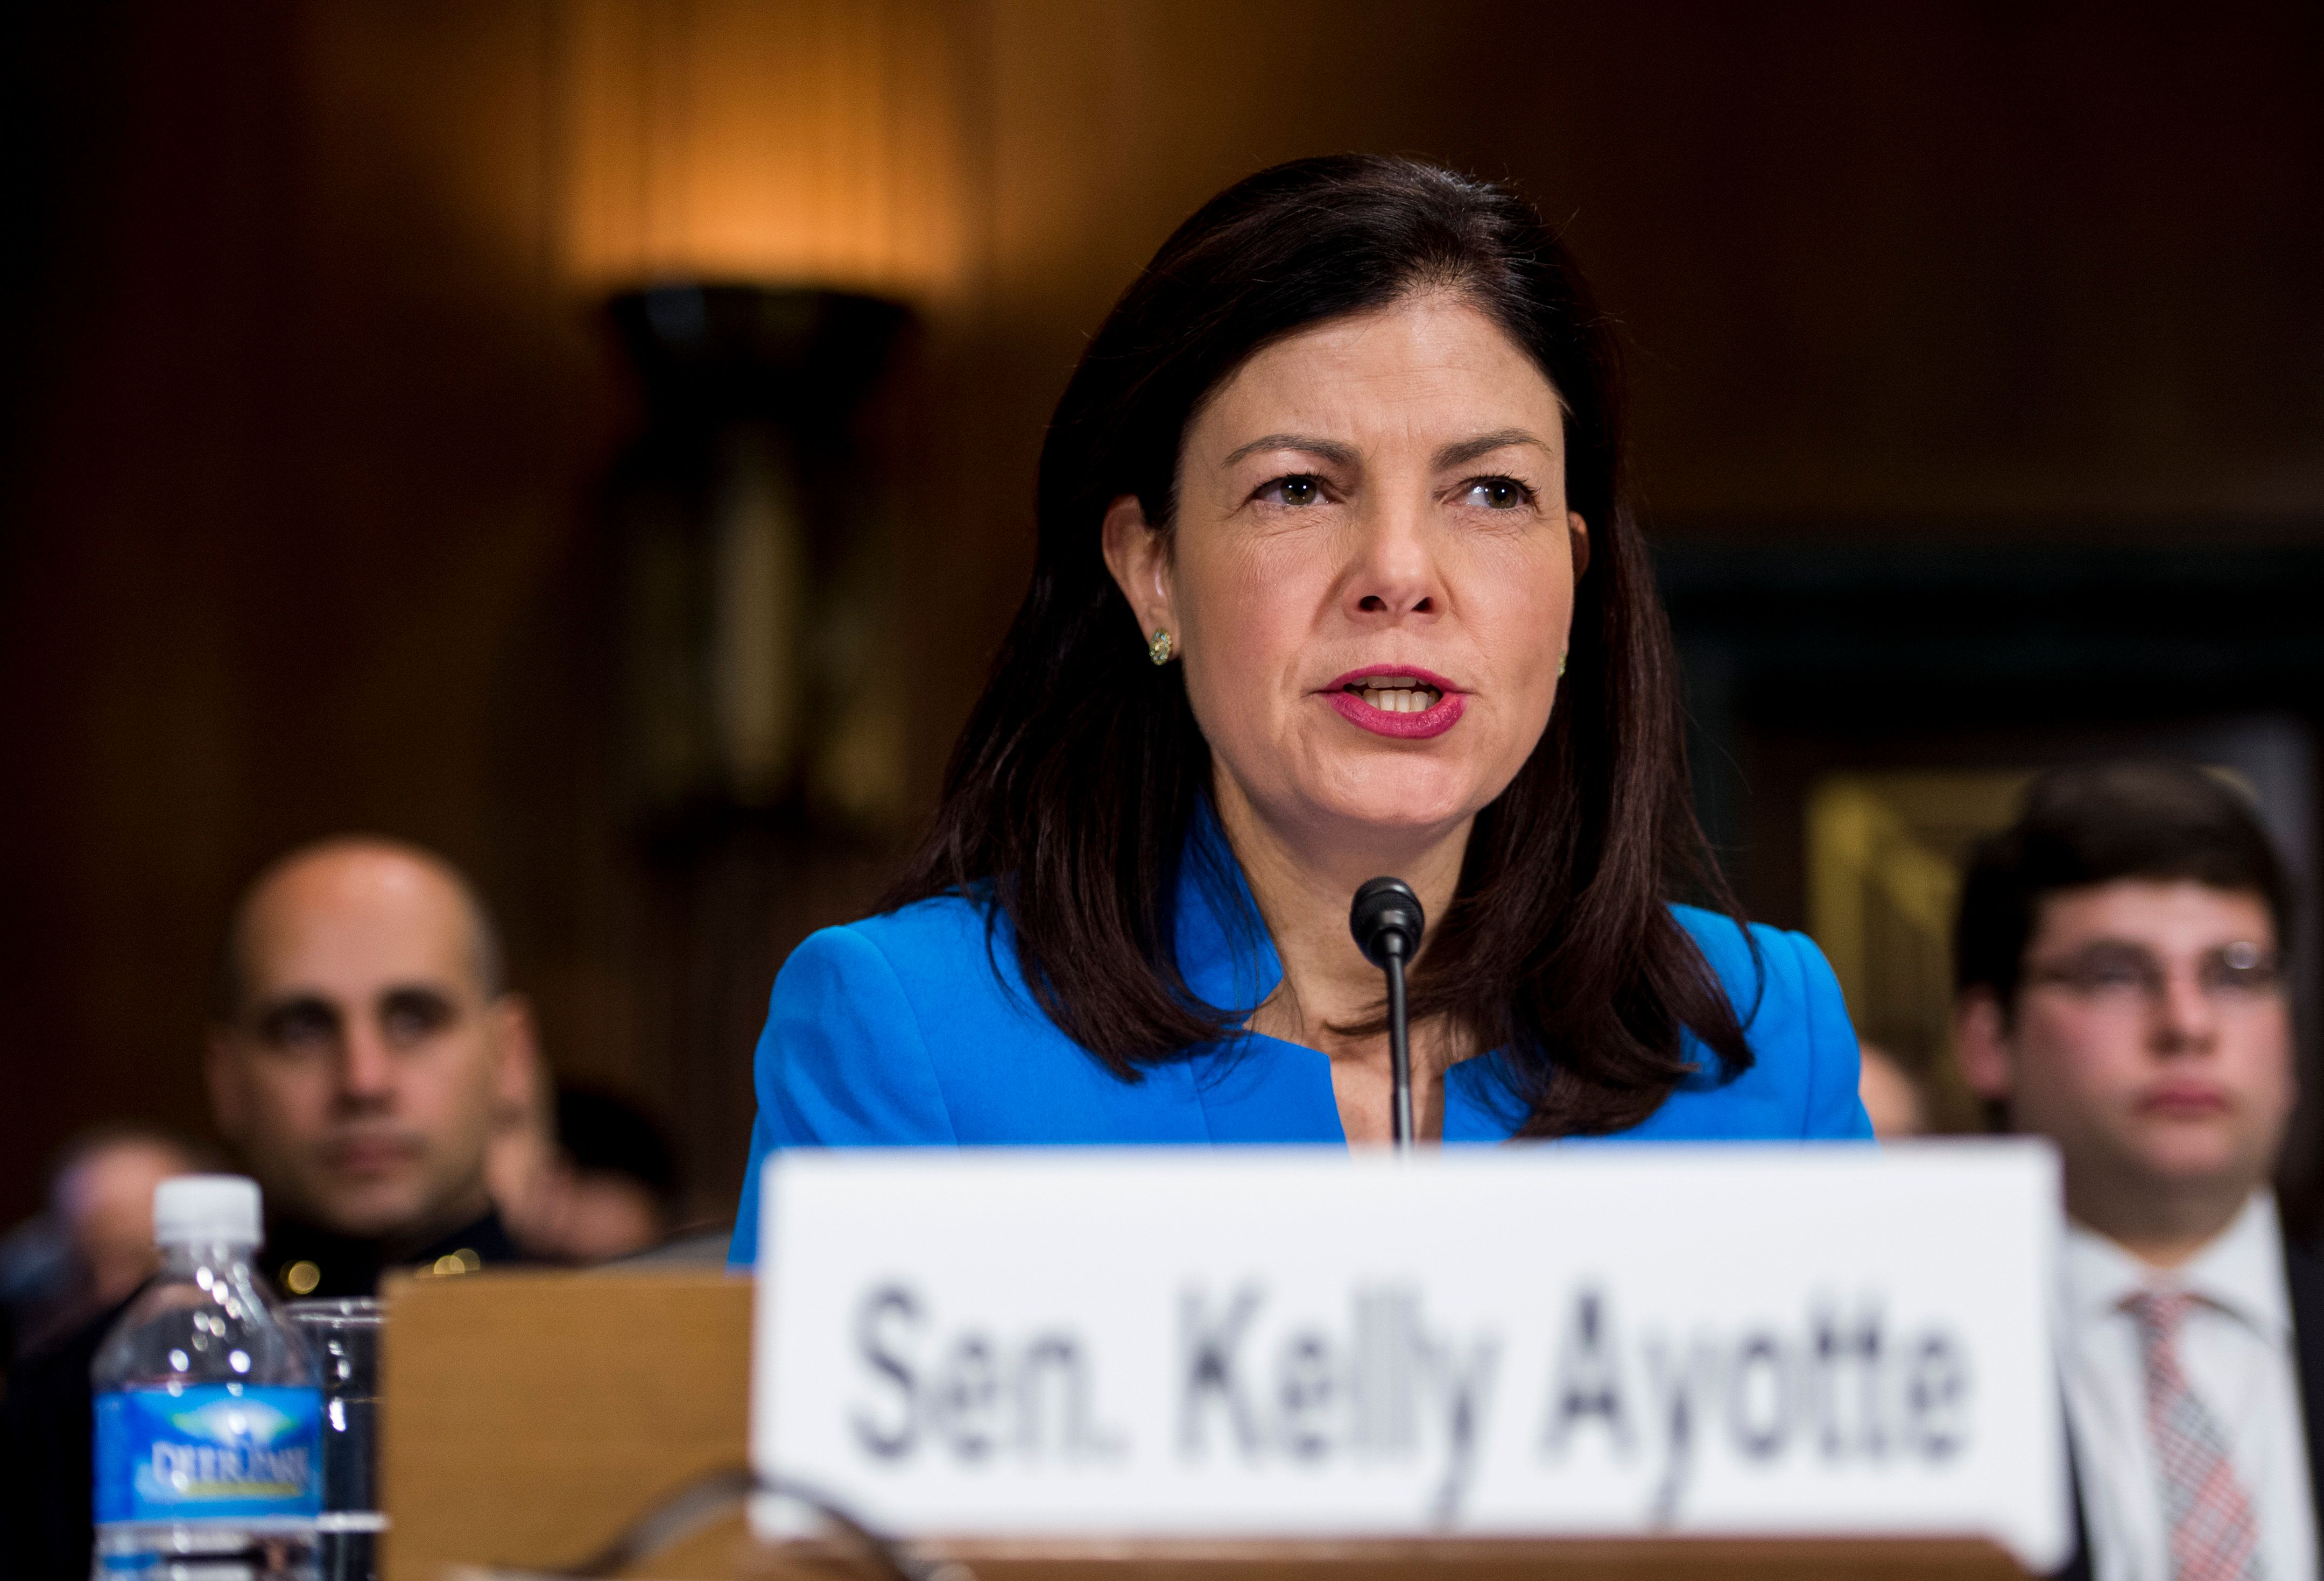 Thatseems to begood news for Sen. Ayotte, although she still faces a primary challenge.